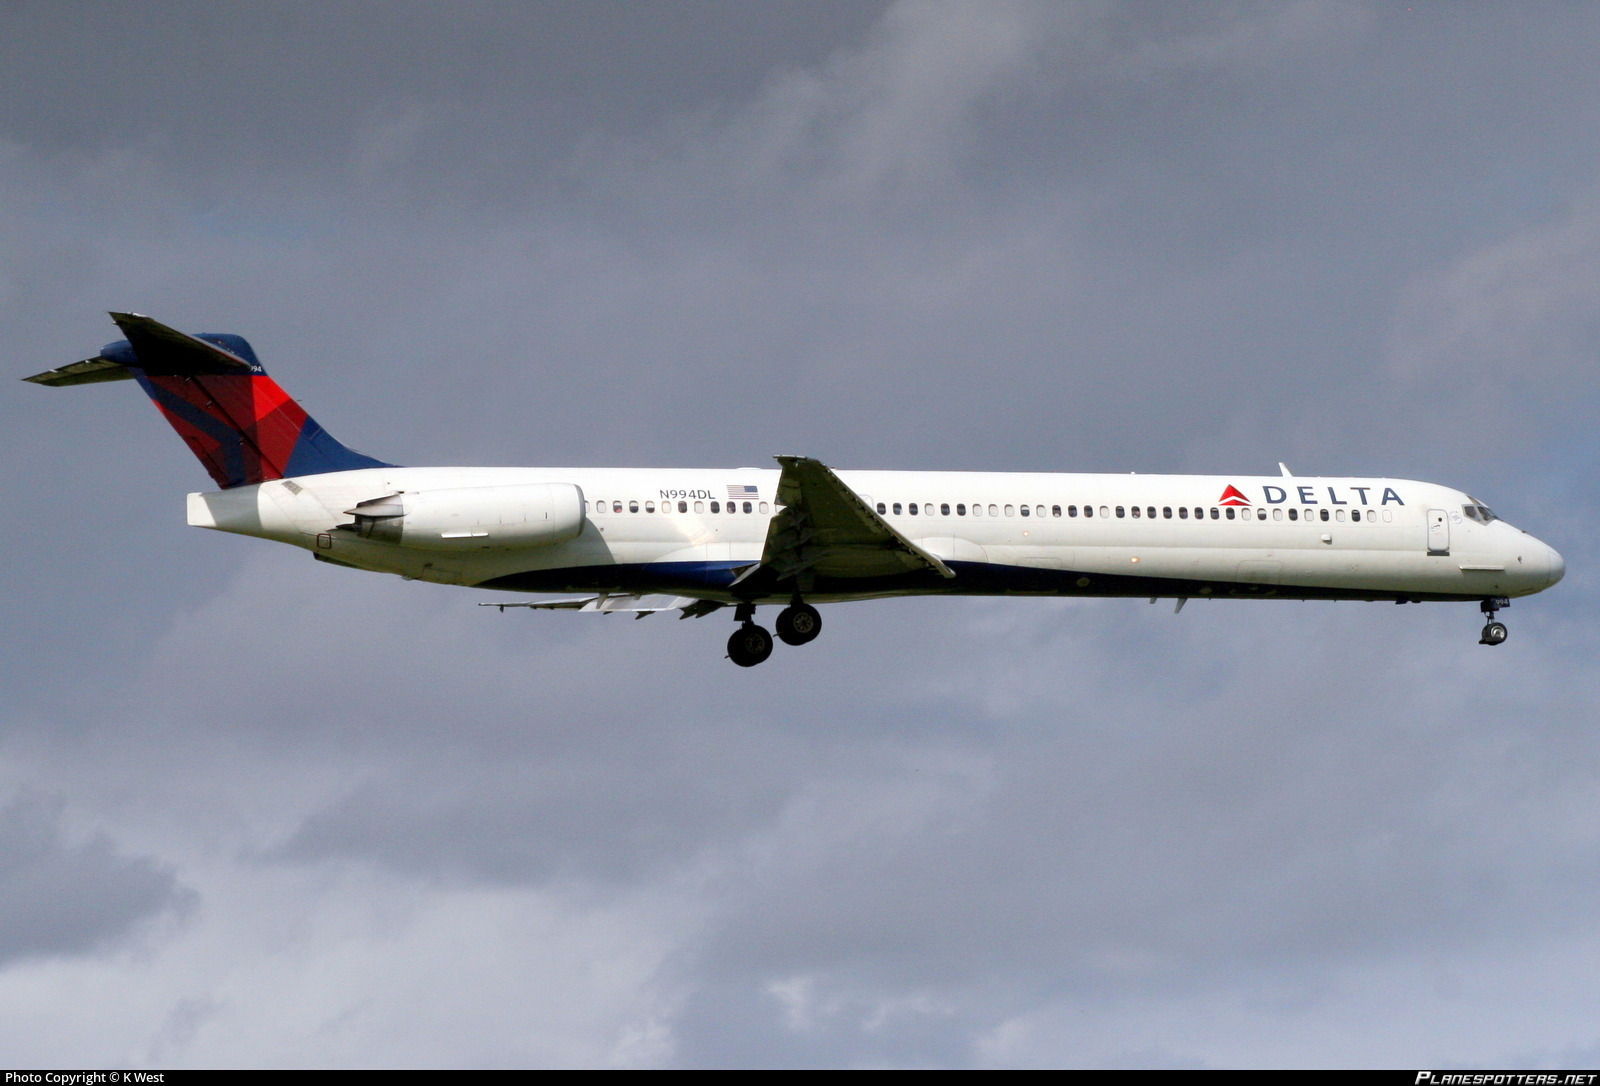 n994dl delta air lines mcdonnell douglas md 88 photo by k west id 794897 planespotters net planespotters net